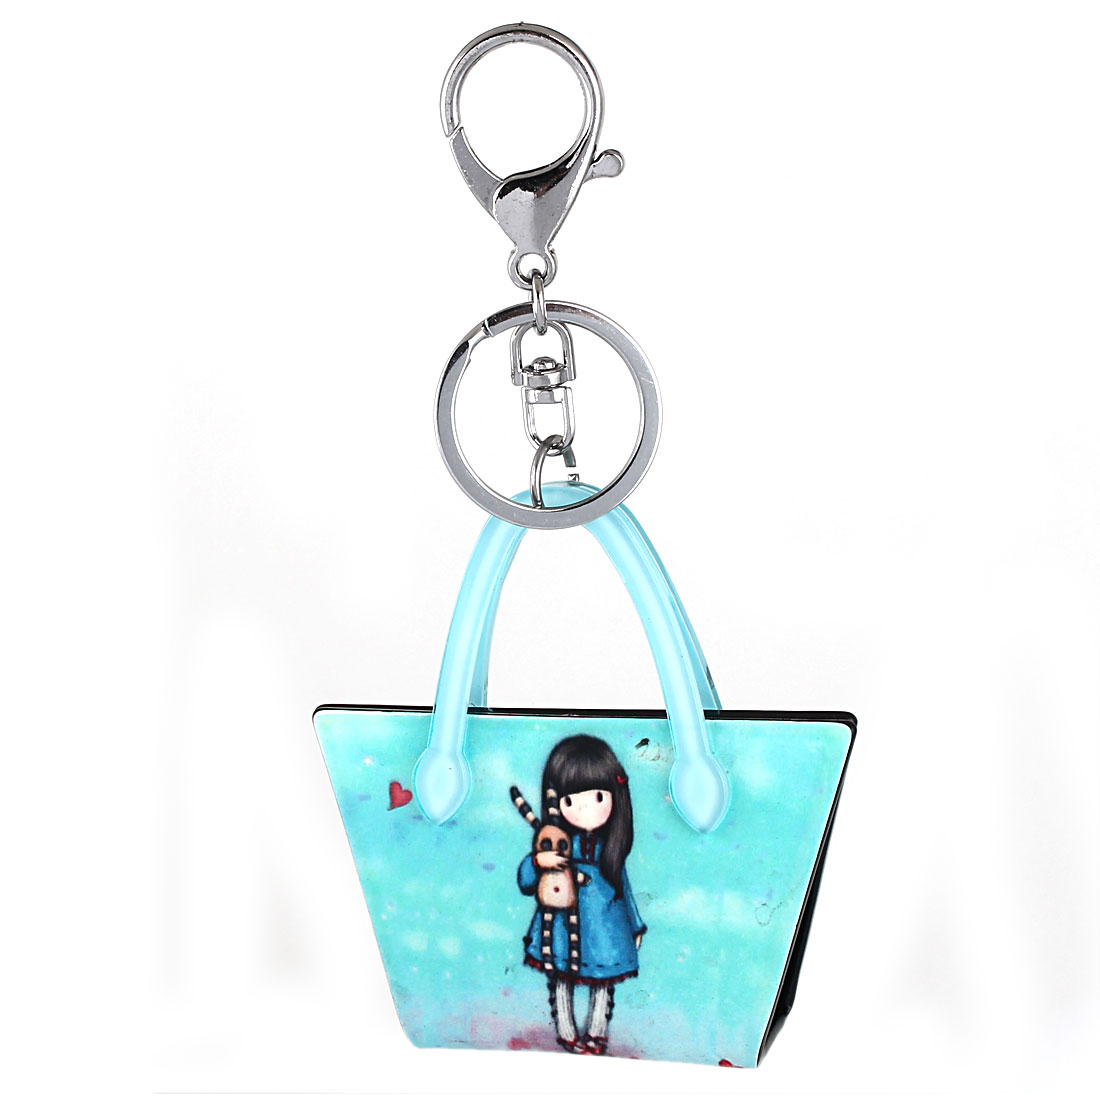 Bag Charm Gift Cartoon Handbag Pendant Lobster Clasp Keyring Key Chain Blue